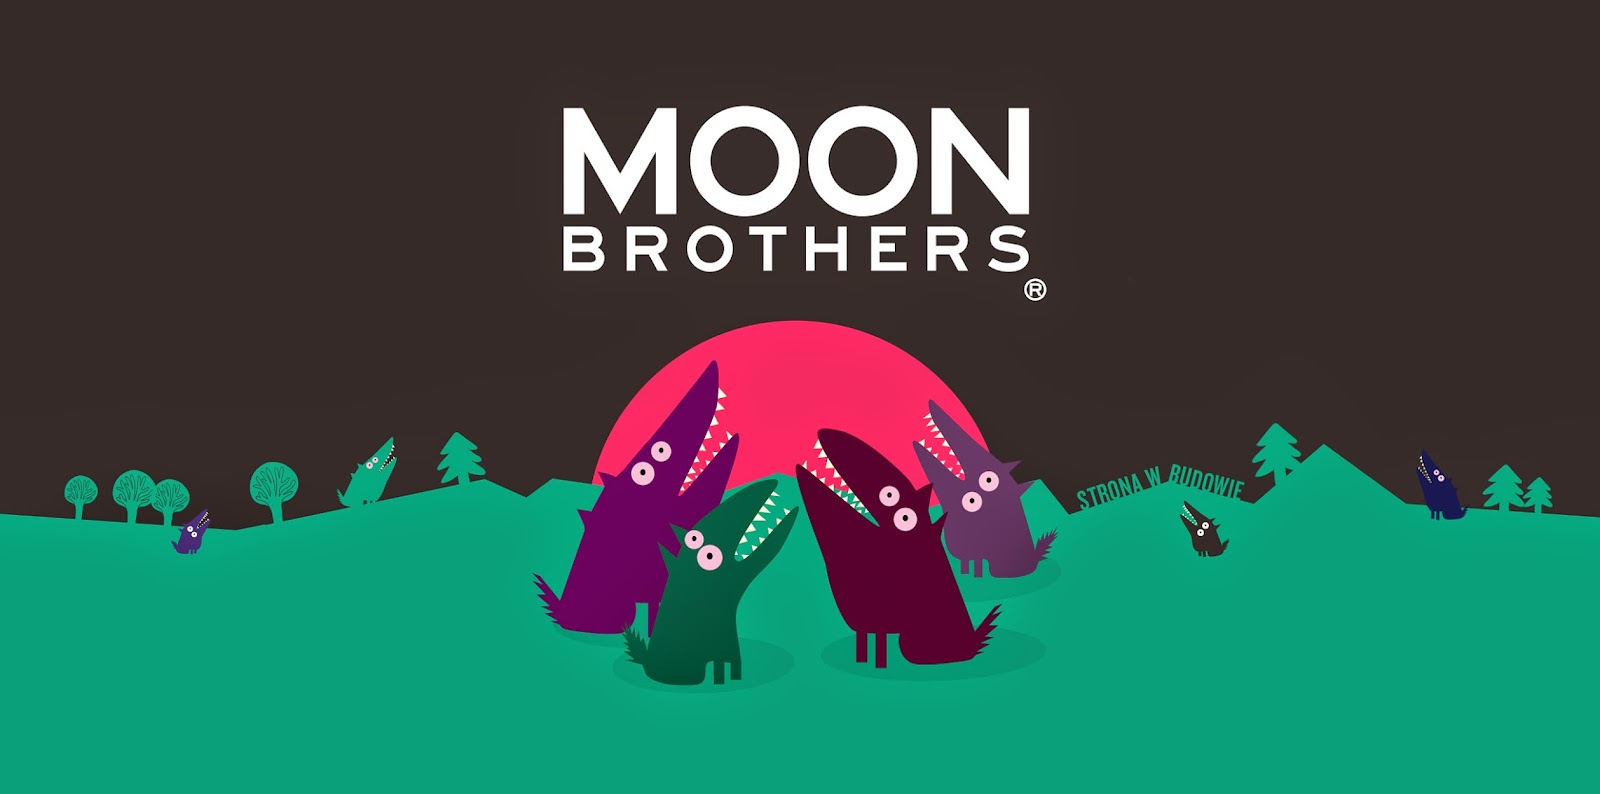 https://www.facebook.com/pages/Moon-Brothers/1474574459462634?sk=timeline